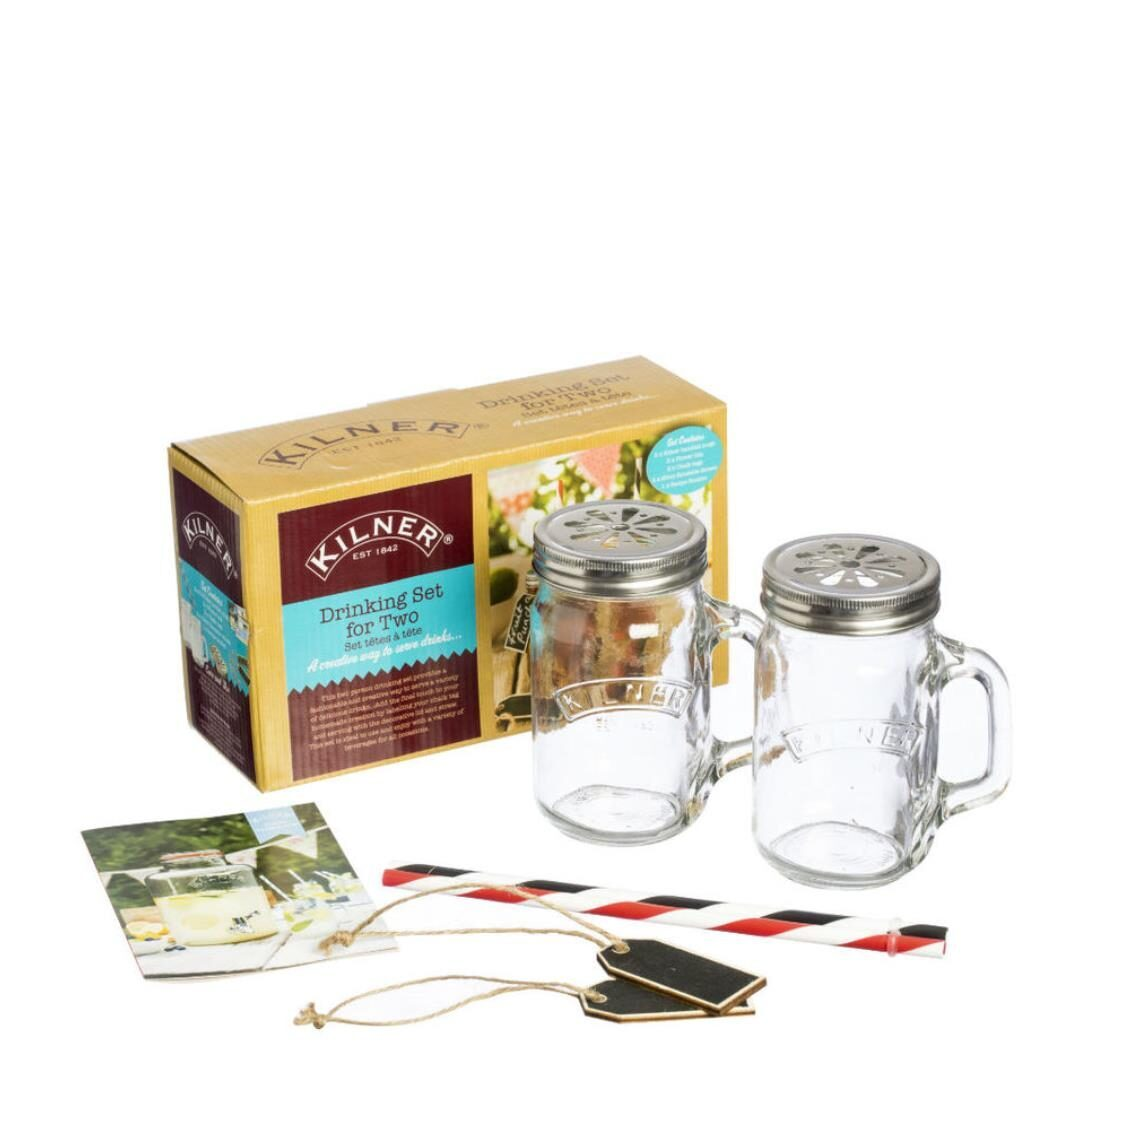 Drinking Set Two Person